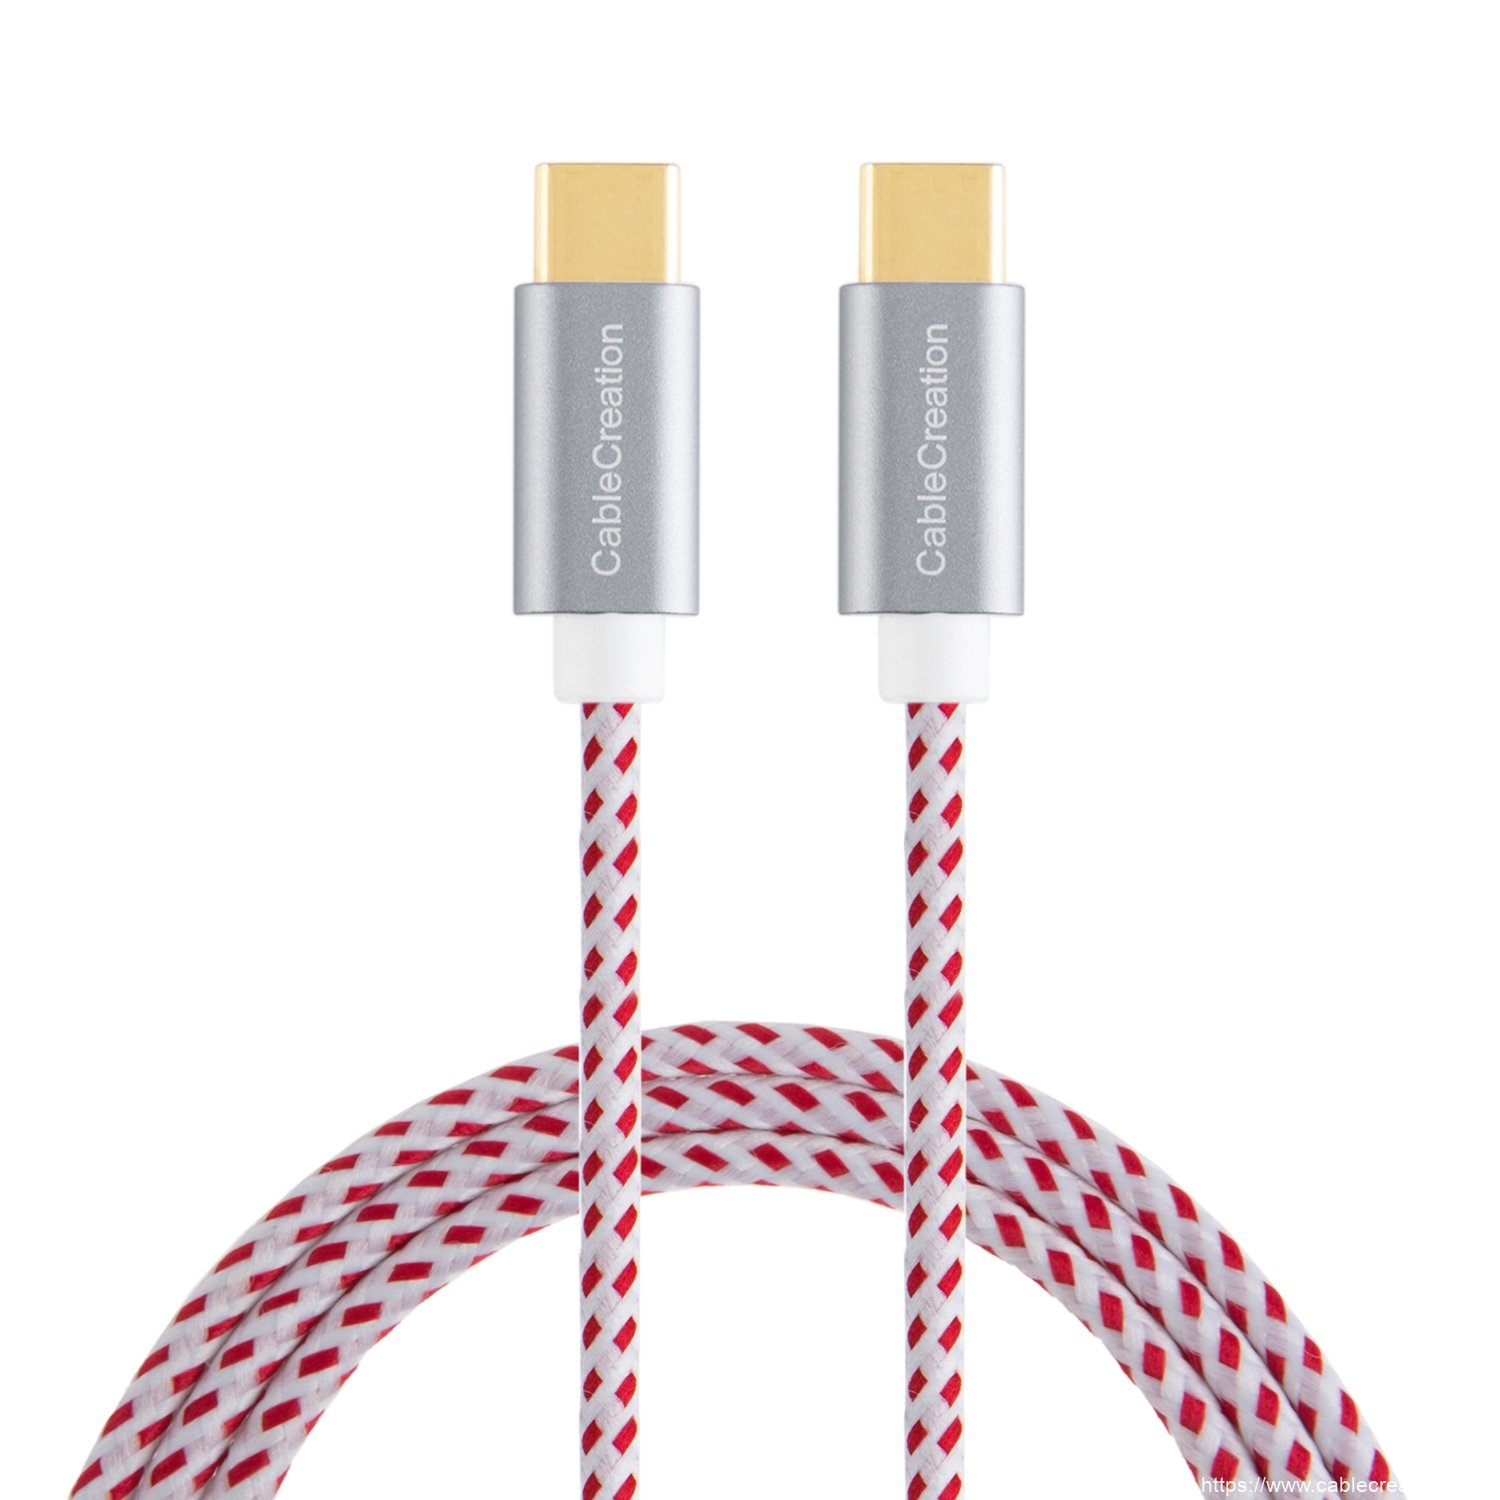 Factory selling Braided Usb C To Usb C Cable - USB C to USB C Cable 10 Feet/3 Meters, #CC0288 – CableCreation